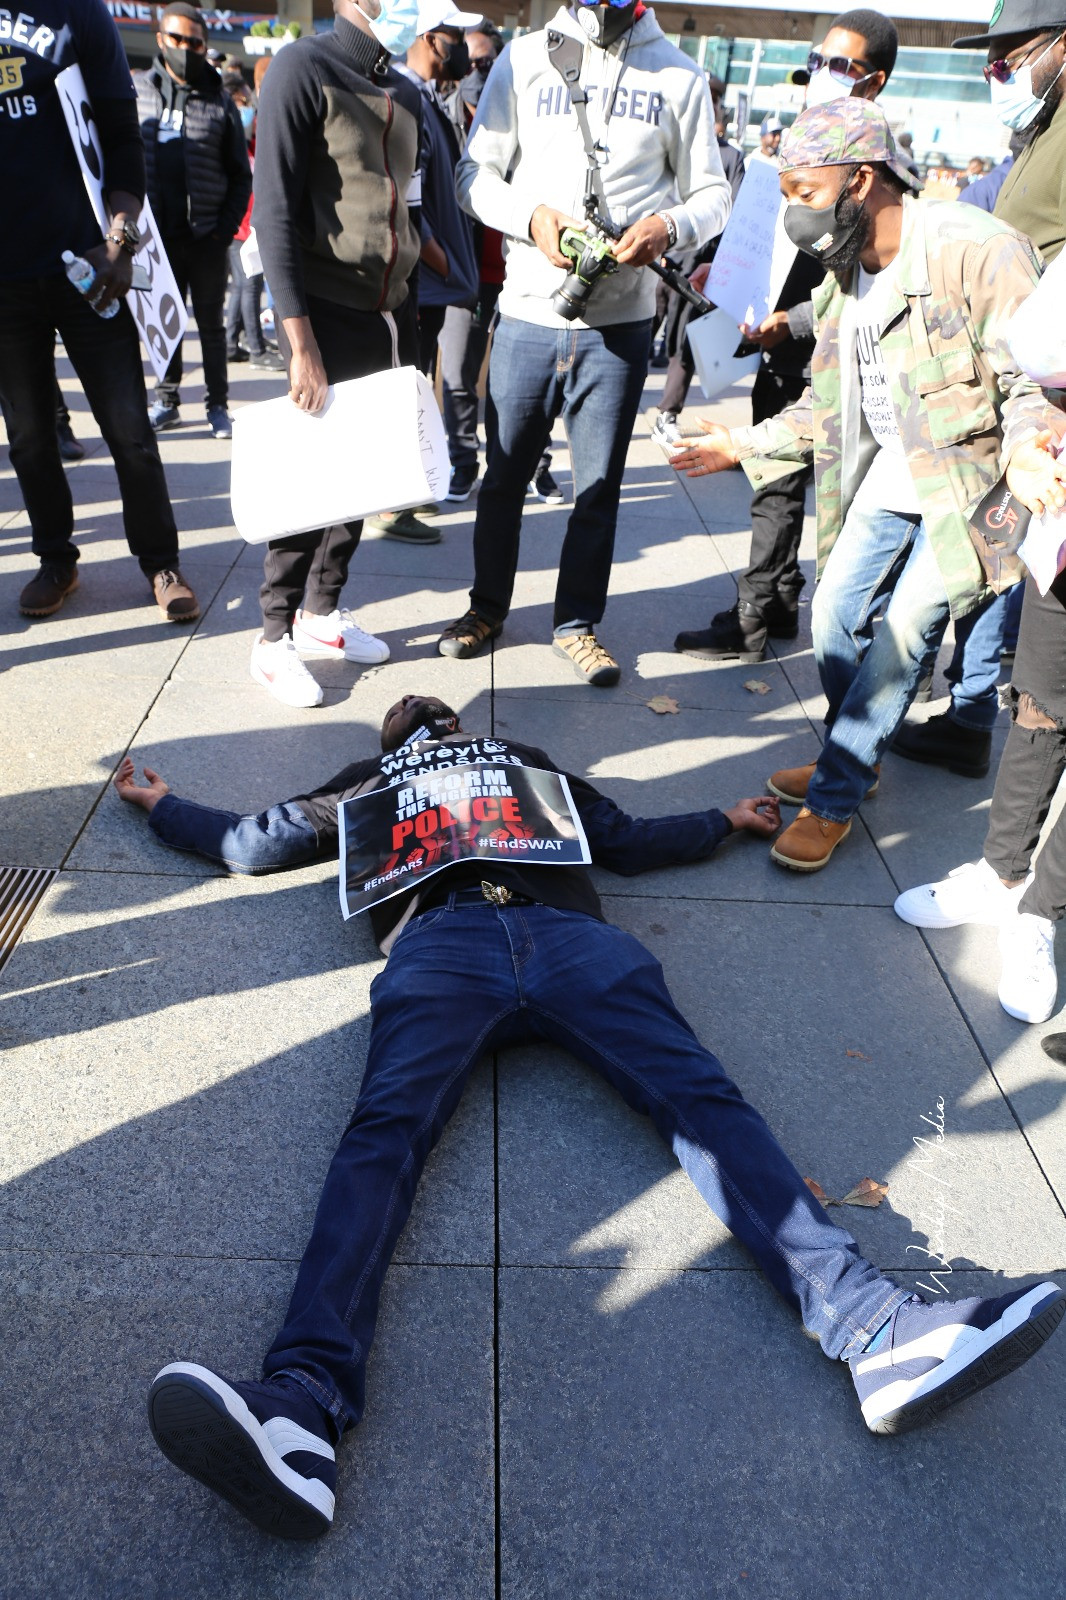 Nigerians abroad stage #EndSARS in US, Europe (photos)